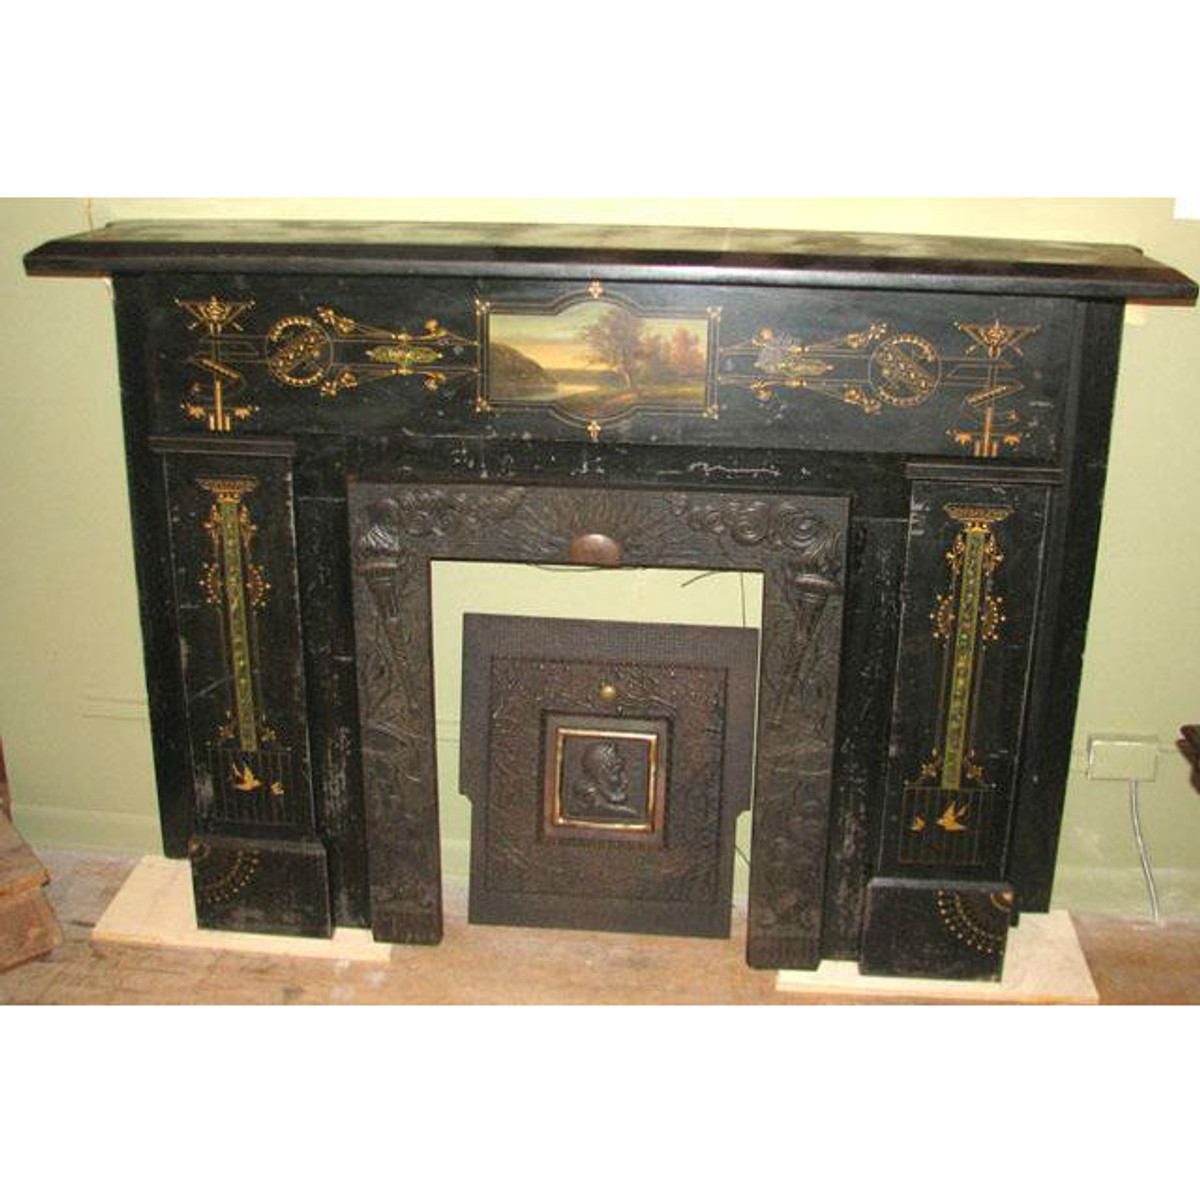 M11009 - Amazing Antique Hand Painted Slate Half Mantel